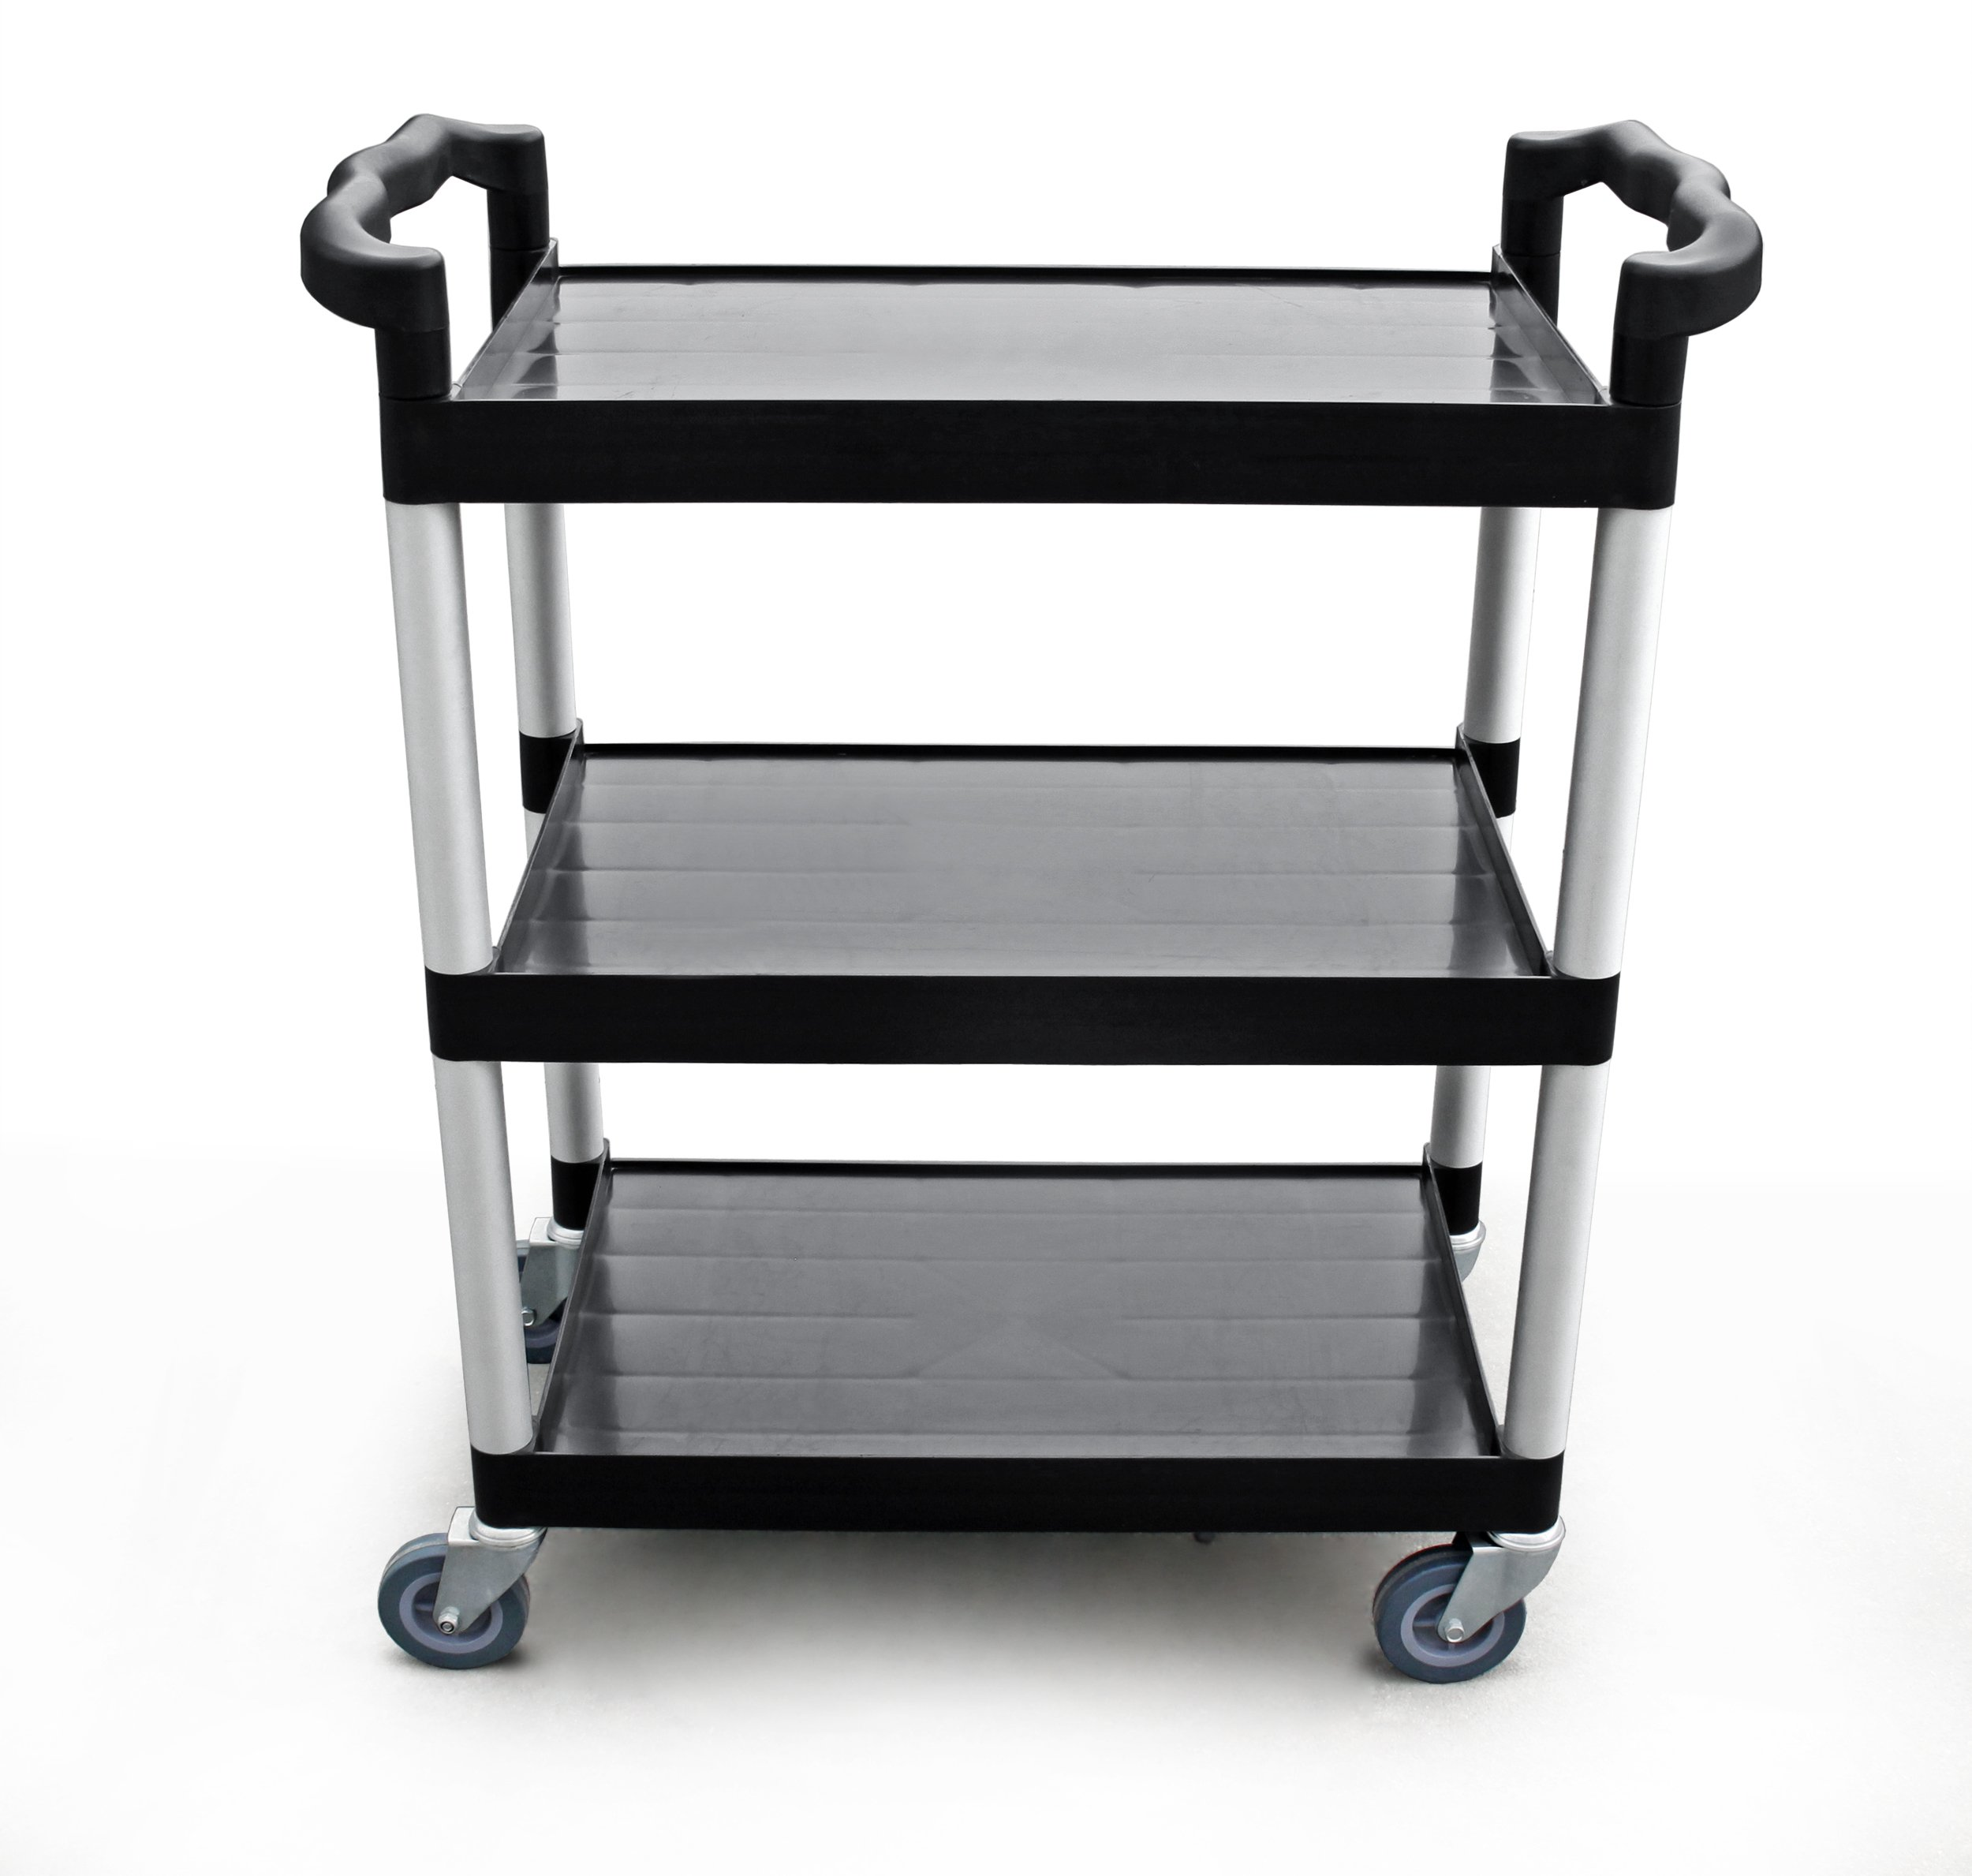 New Star 1 pc Heavy Duty Utility Cart Bus Cart 350 lbs Load 3 Tier Cart 42-1/2x19-1/2x38-1/2'' Black